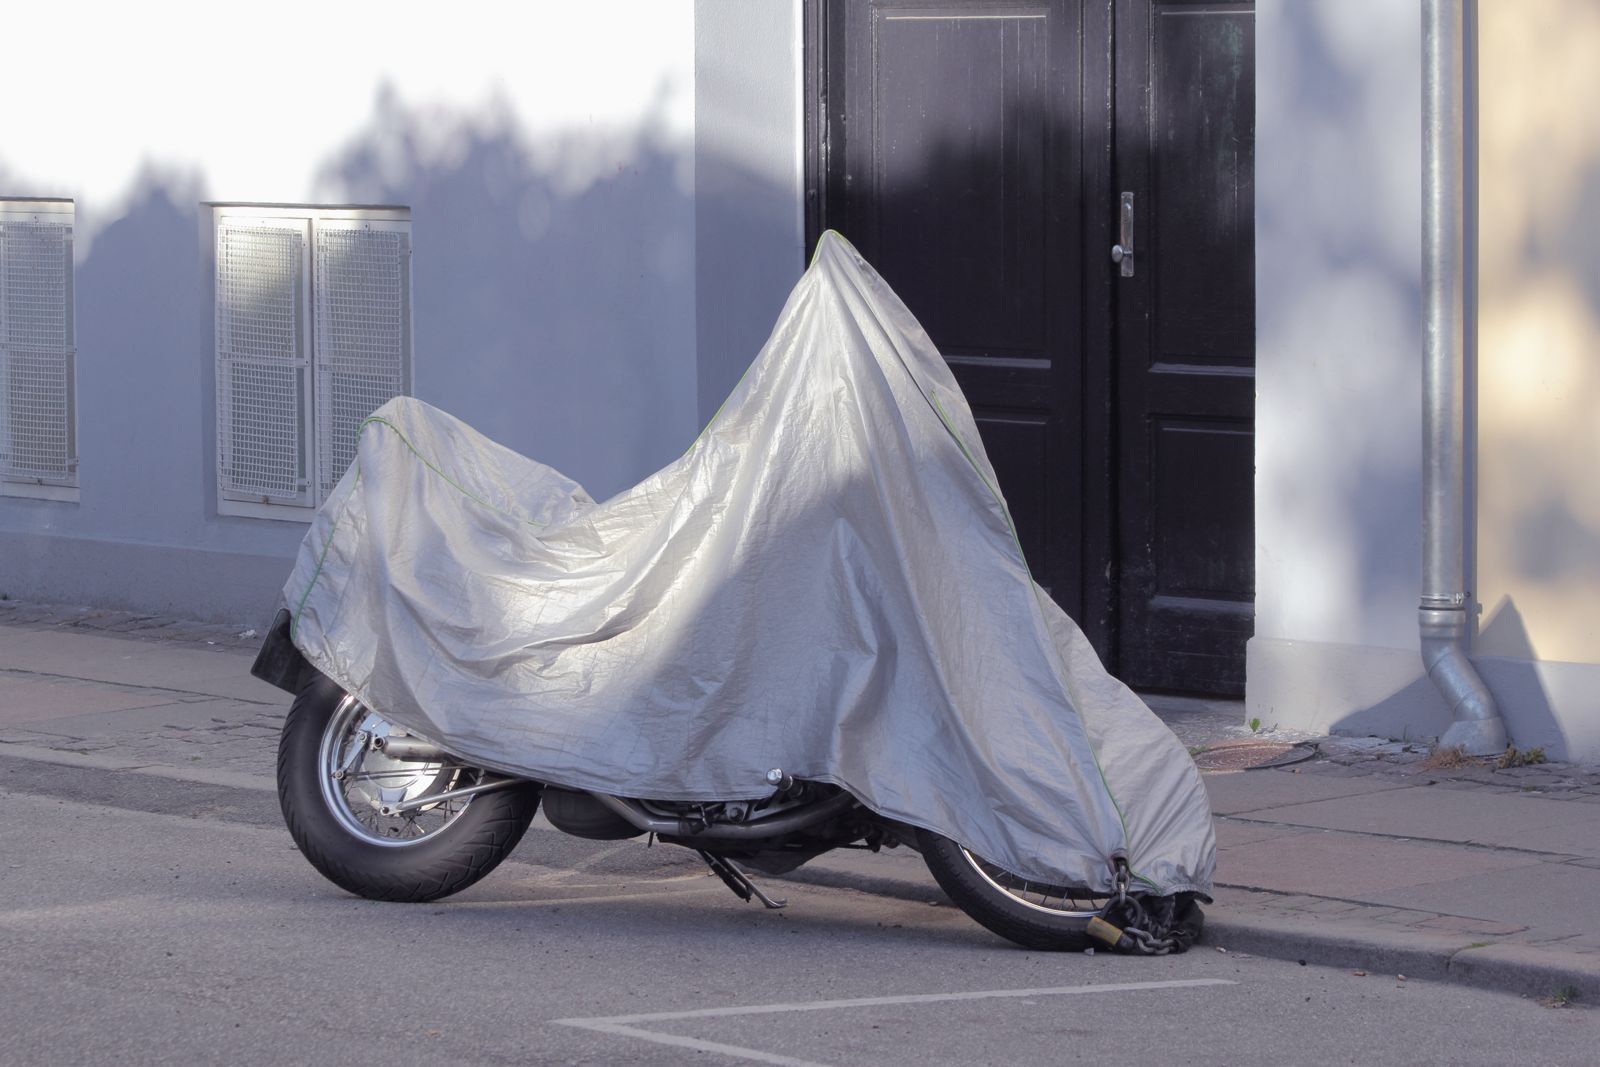 Motorcycle With Cover Parked on Street